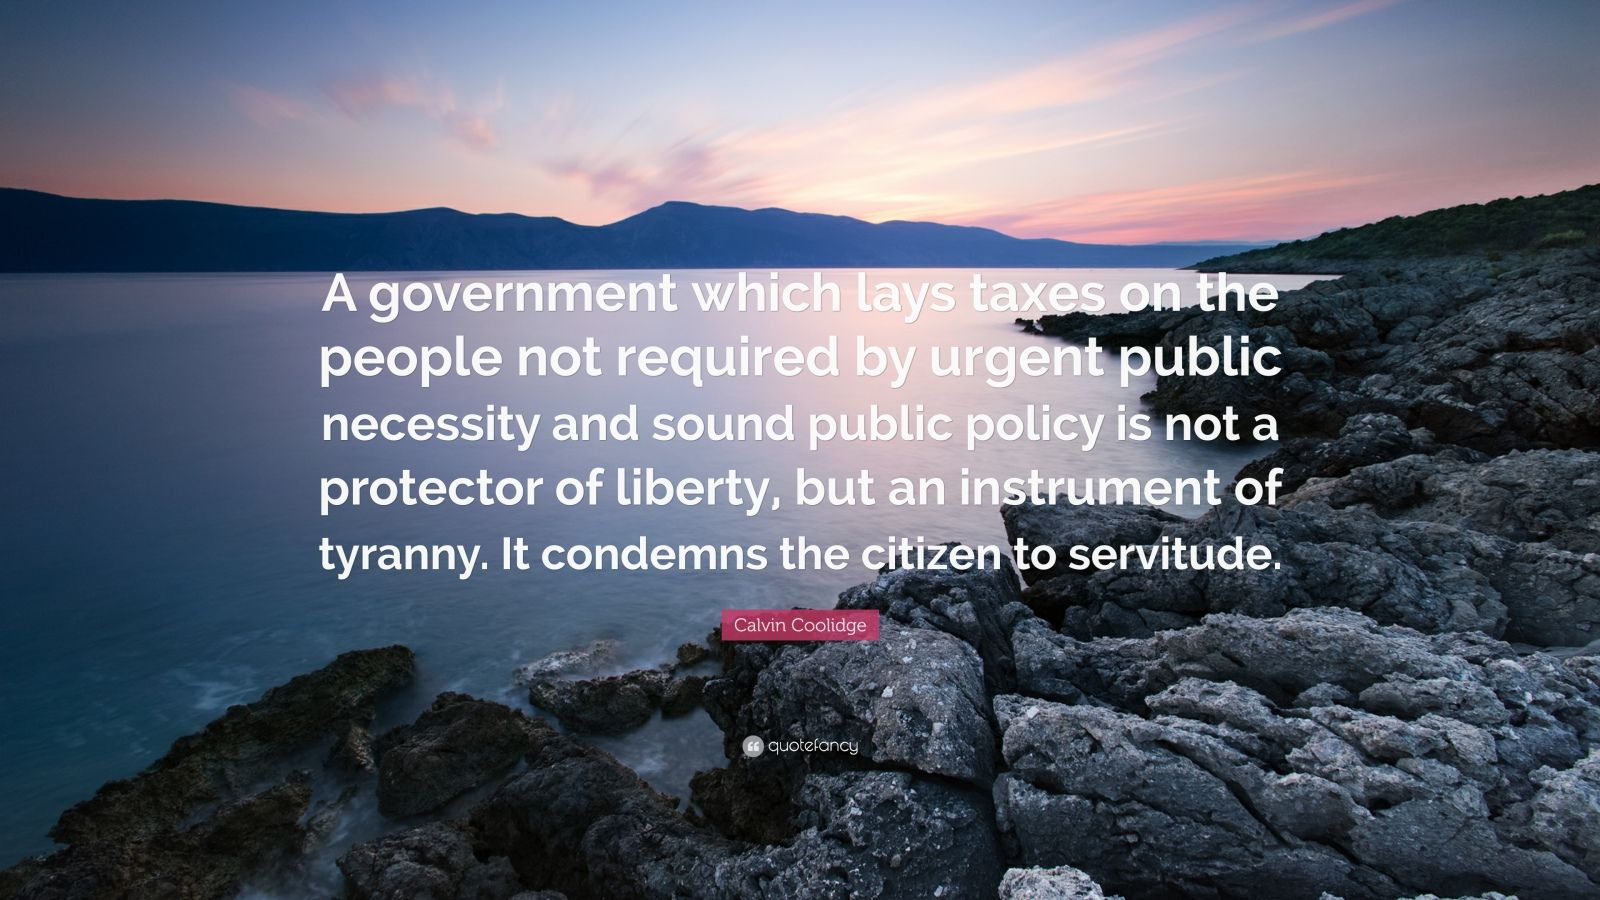 "Calvin Coolidge Quote: ""A government which lays taxes on the people not required by urgent public necessity and sound public policy is not a protector of liberty, but an instrument of tyranny. It condemns the citizen to servitude."""